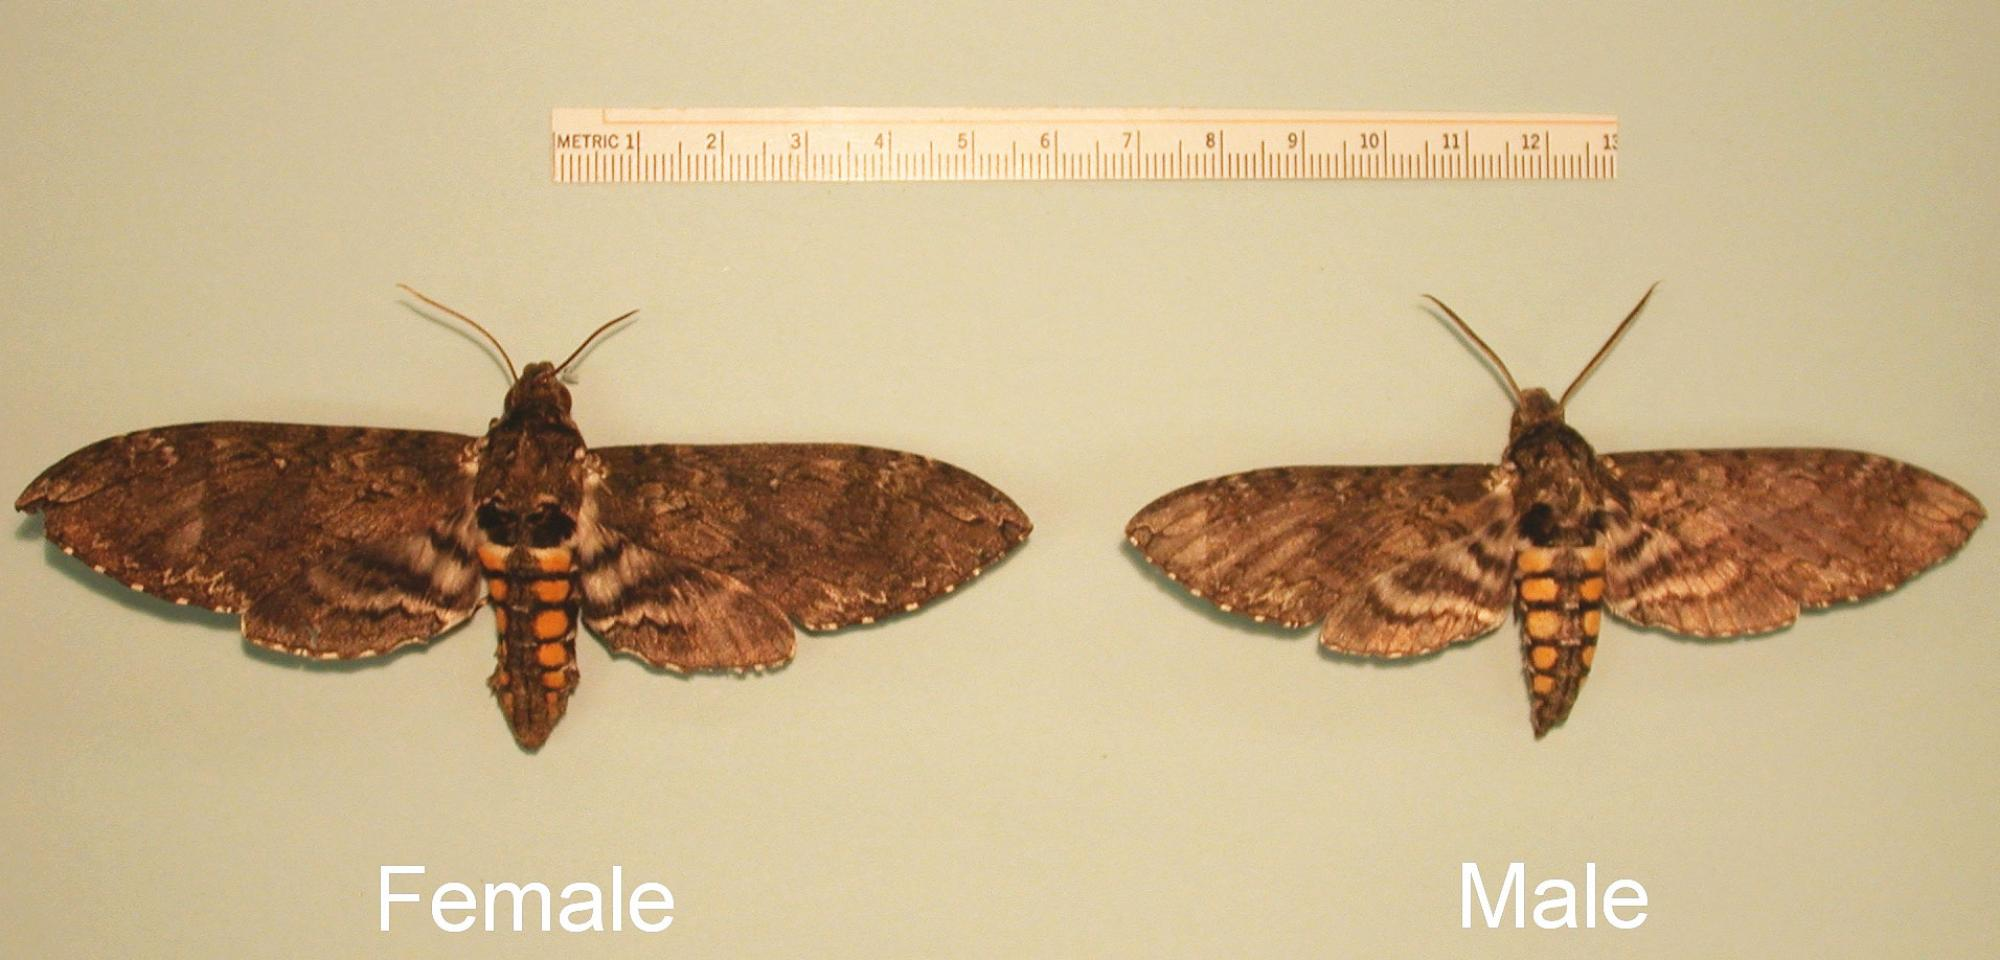 Female hawk moths  are larger than their male counterparts